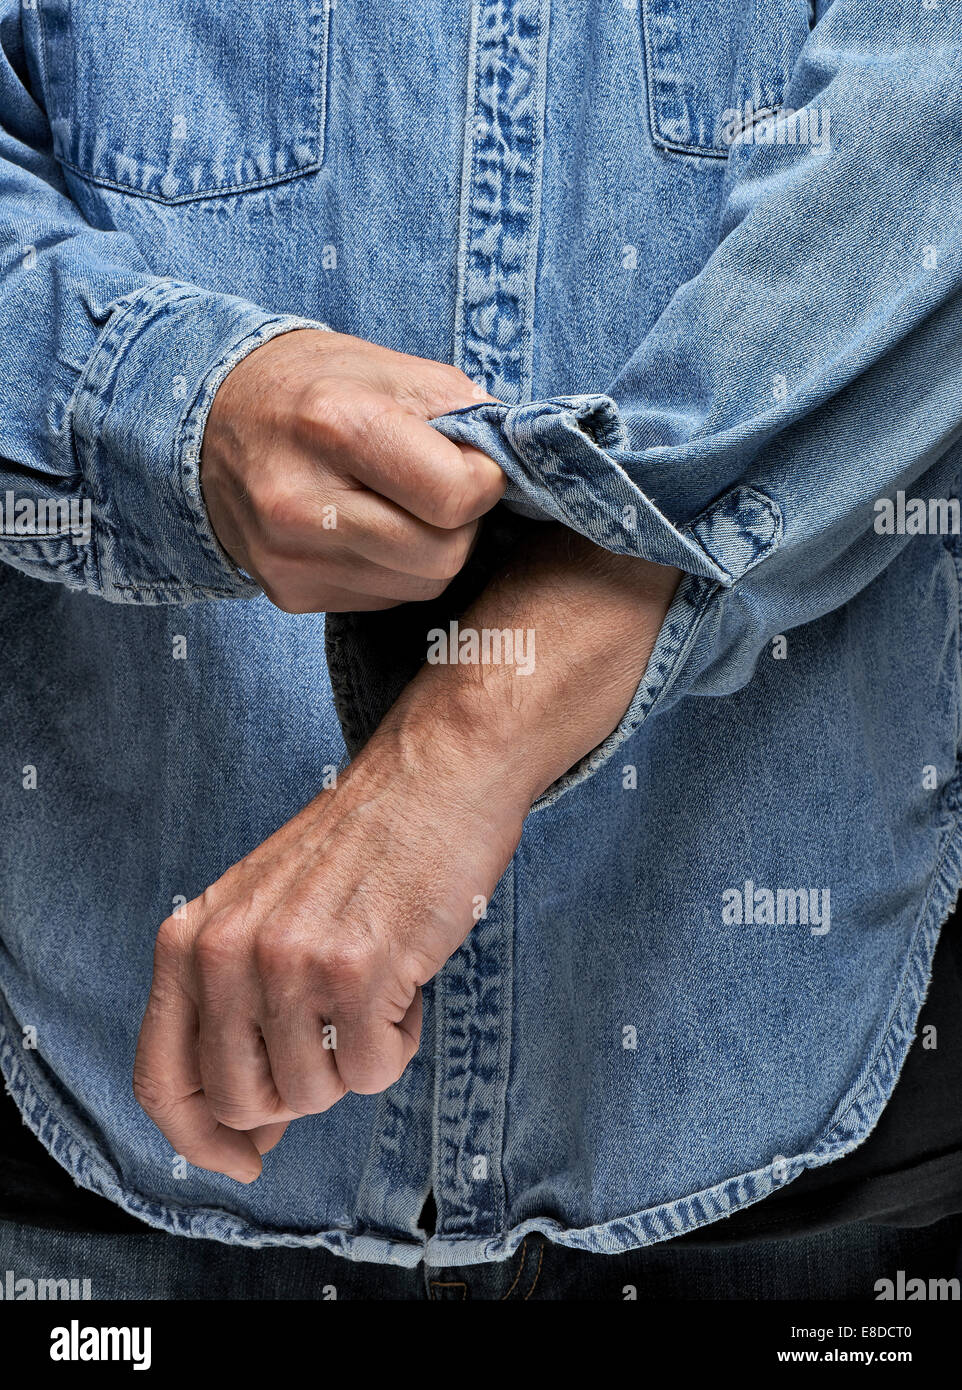 Man in denim shirt rolling up his sleeves - Stock Image